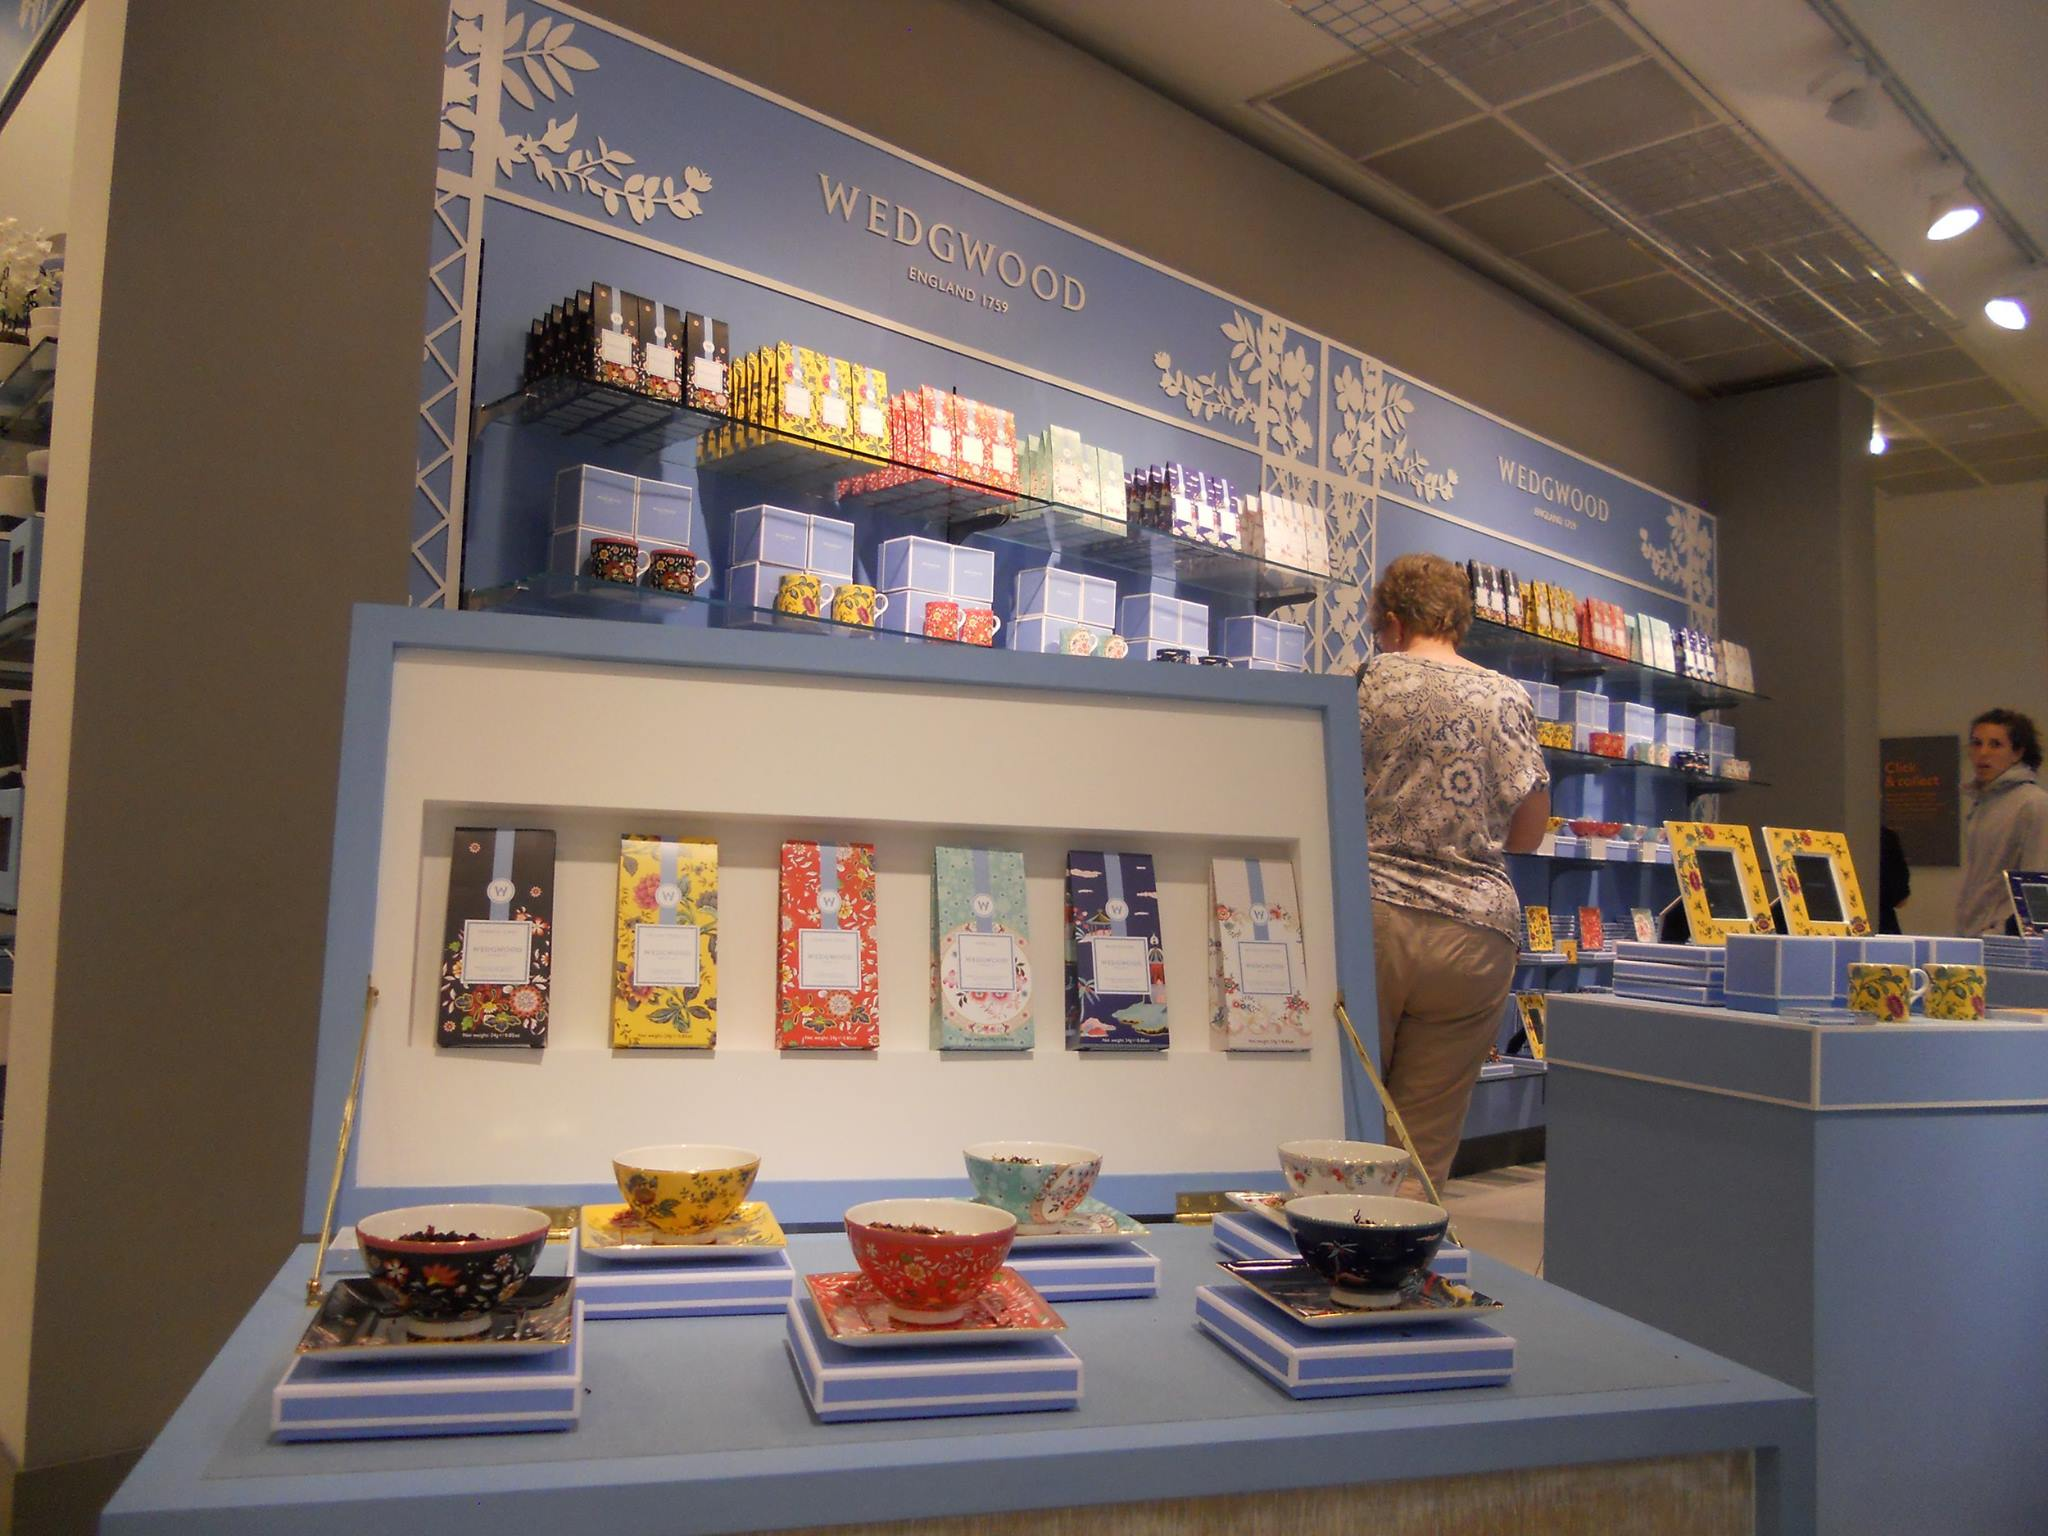 tasty-tasteful-wedgwood-wonderwalls